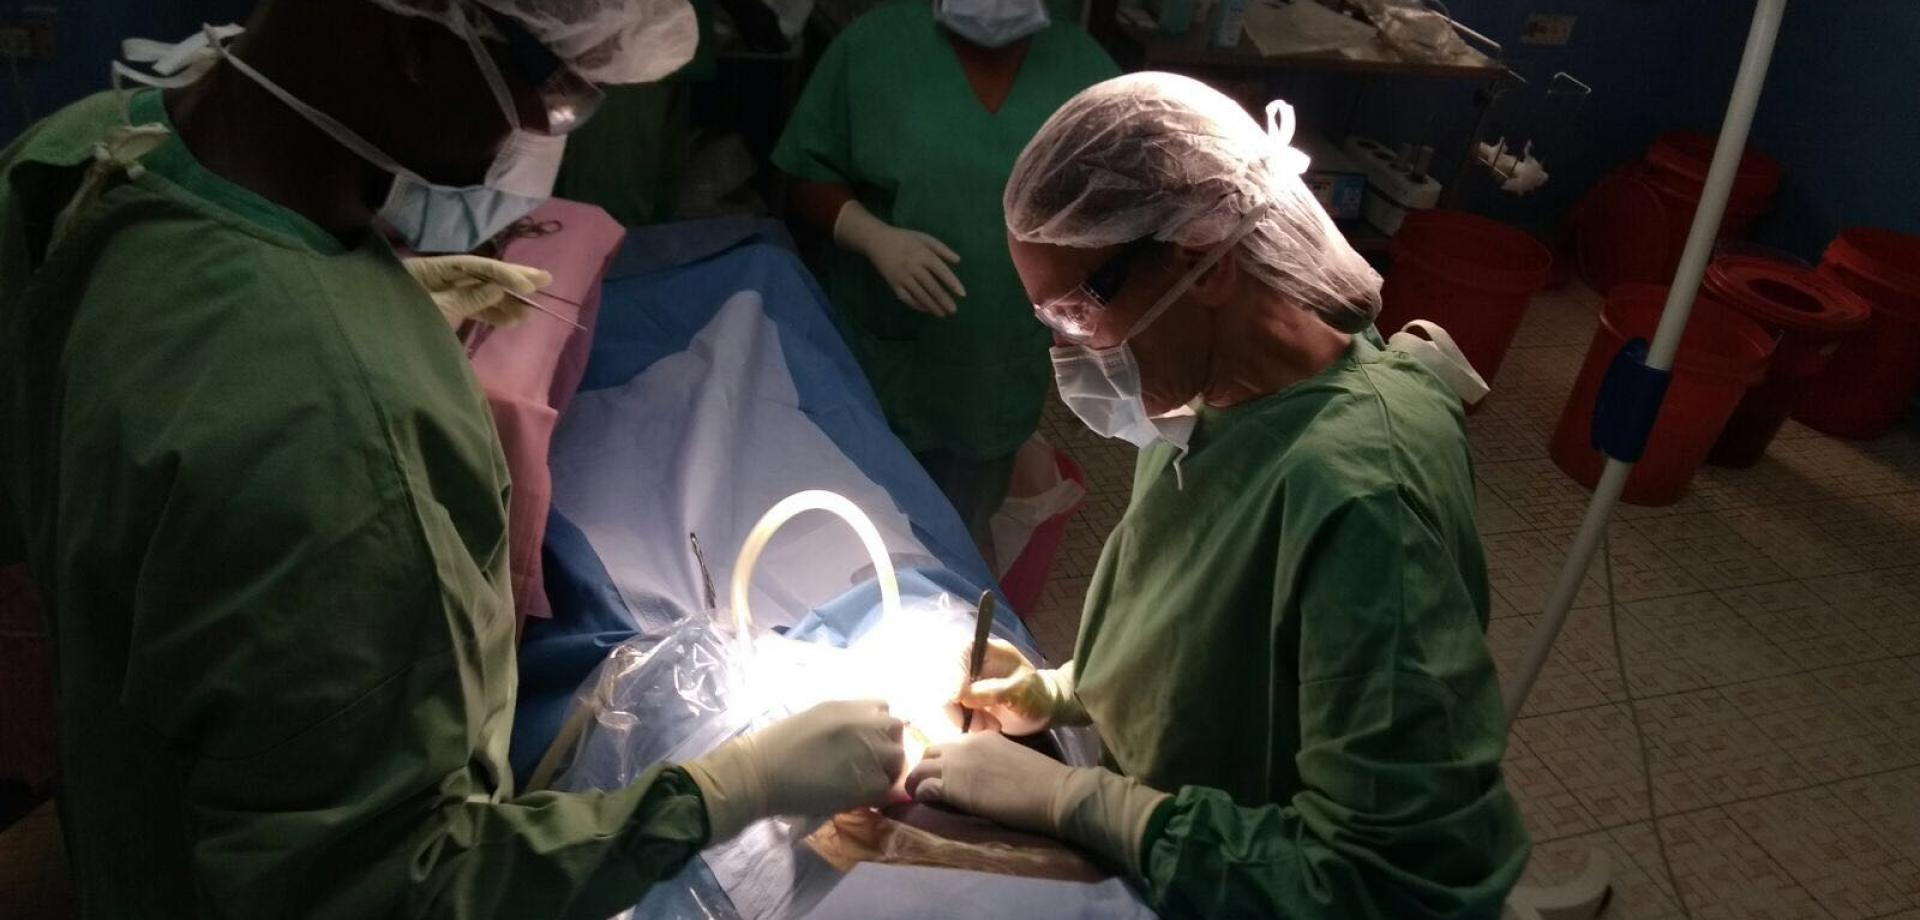 Heidi at work in the operating theatre